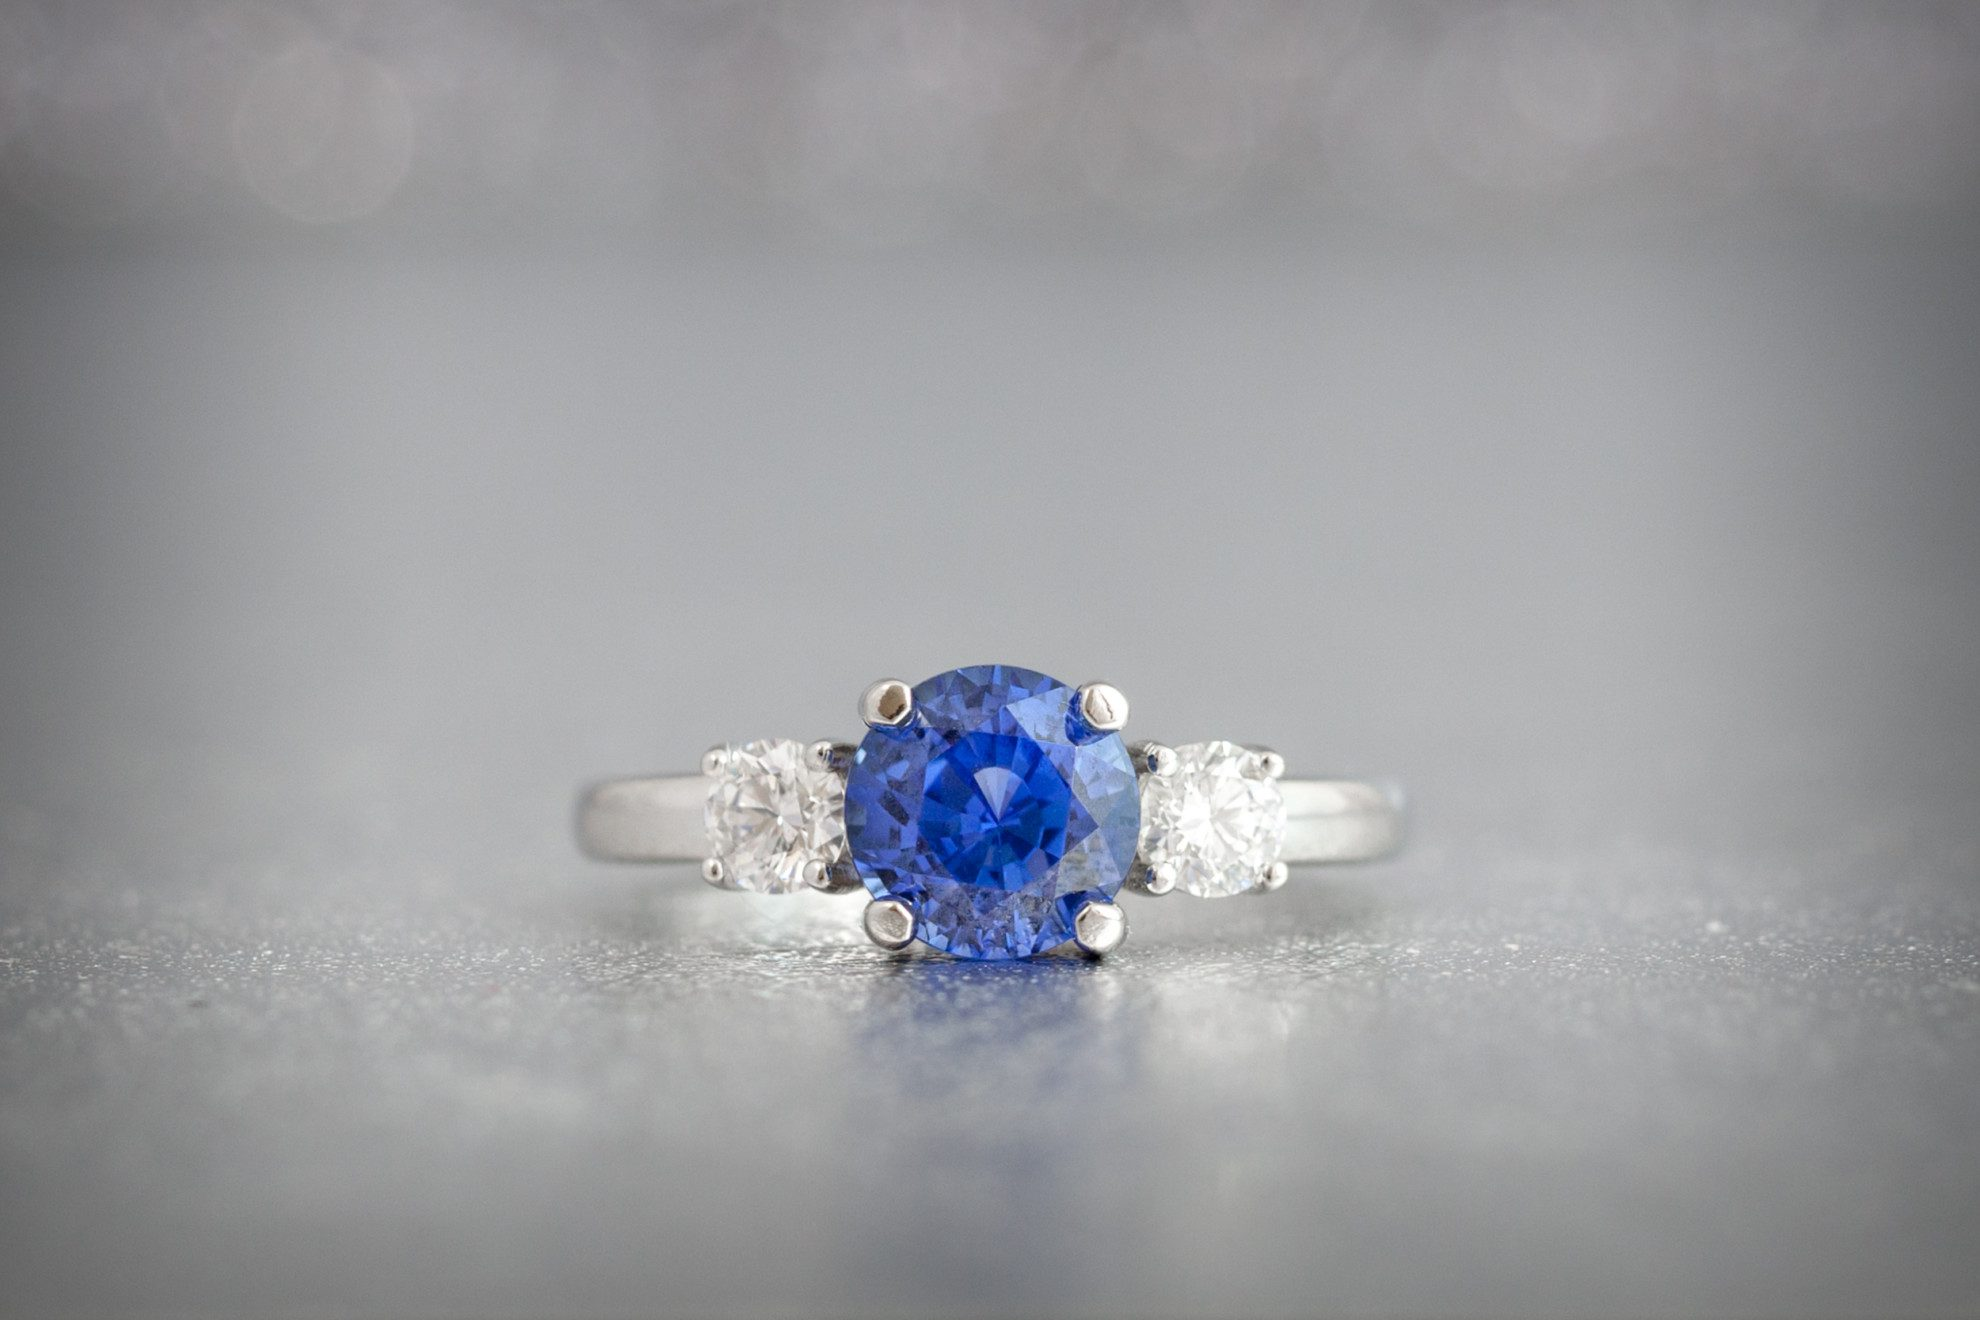 graded blue dark apprasied il rare rings diamond fullxfull ring size listing and engagement